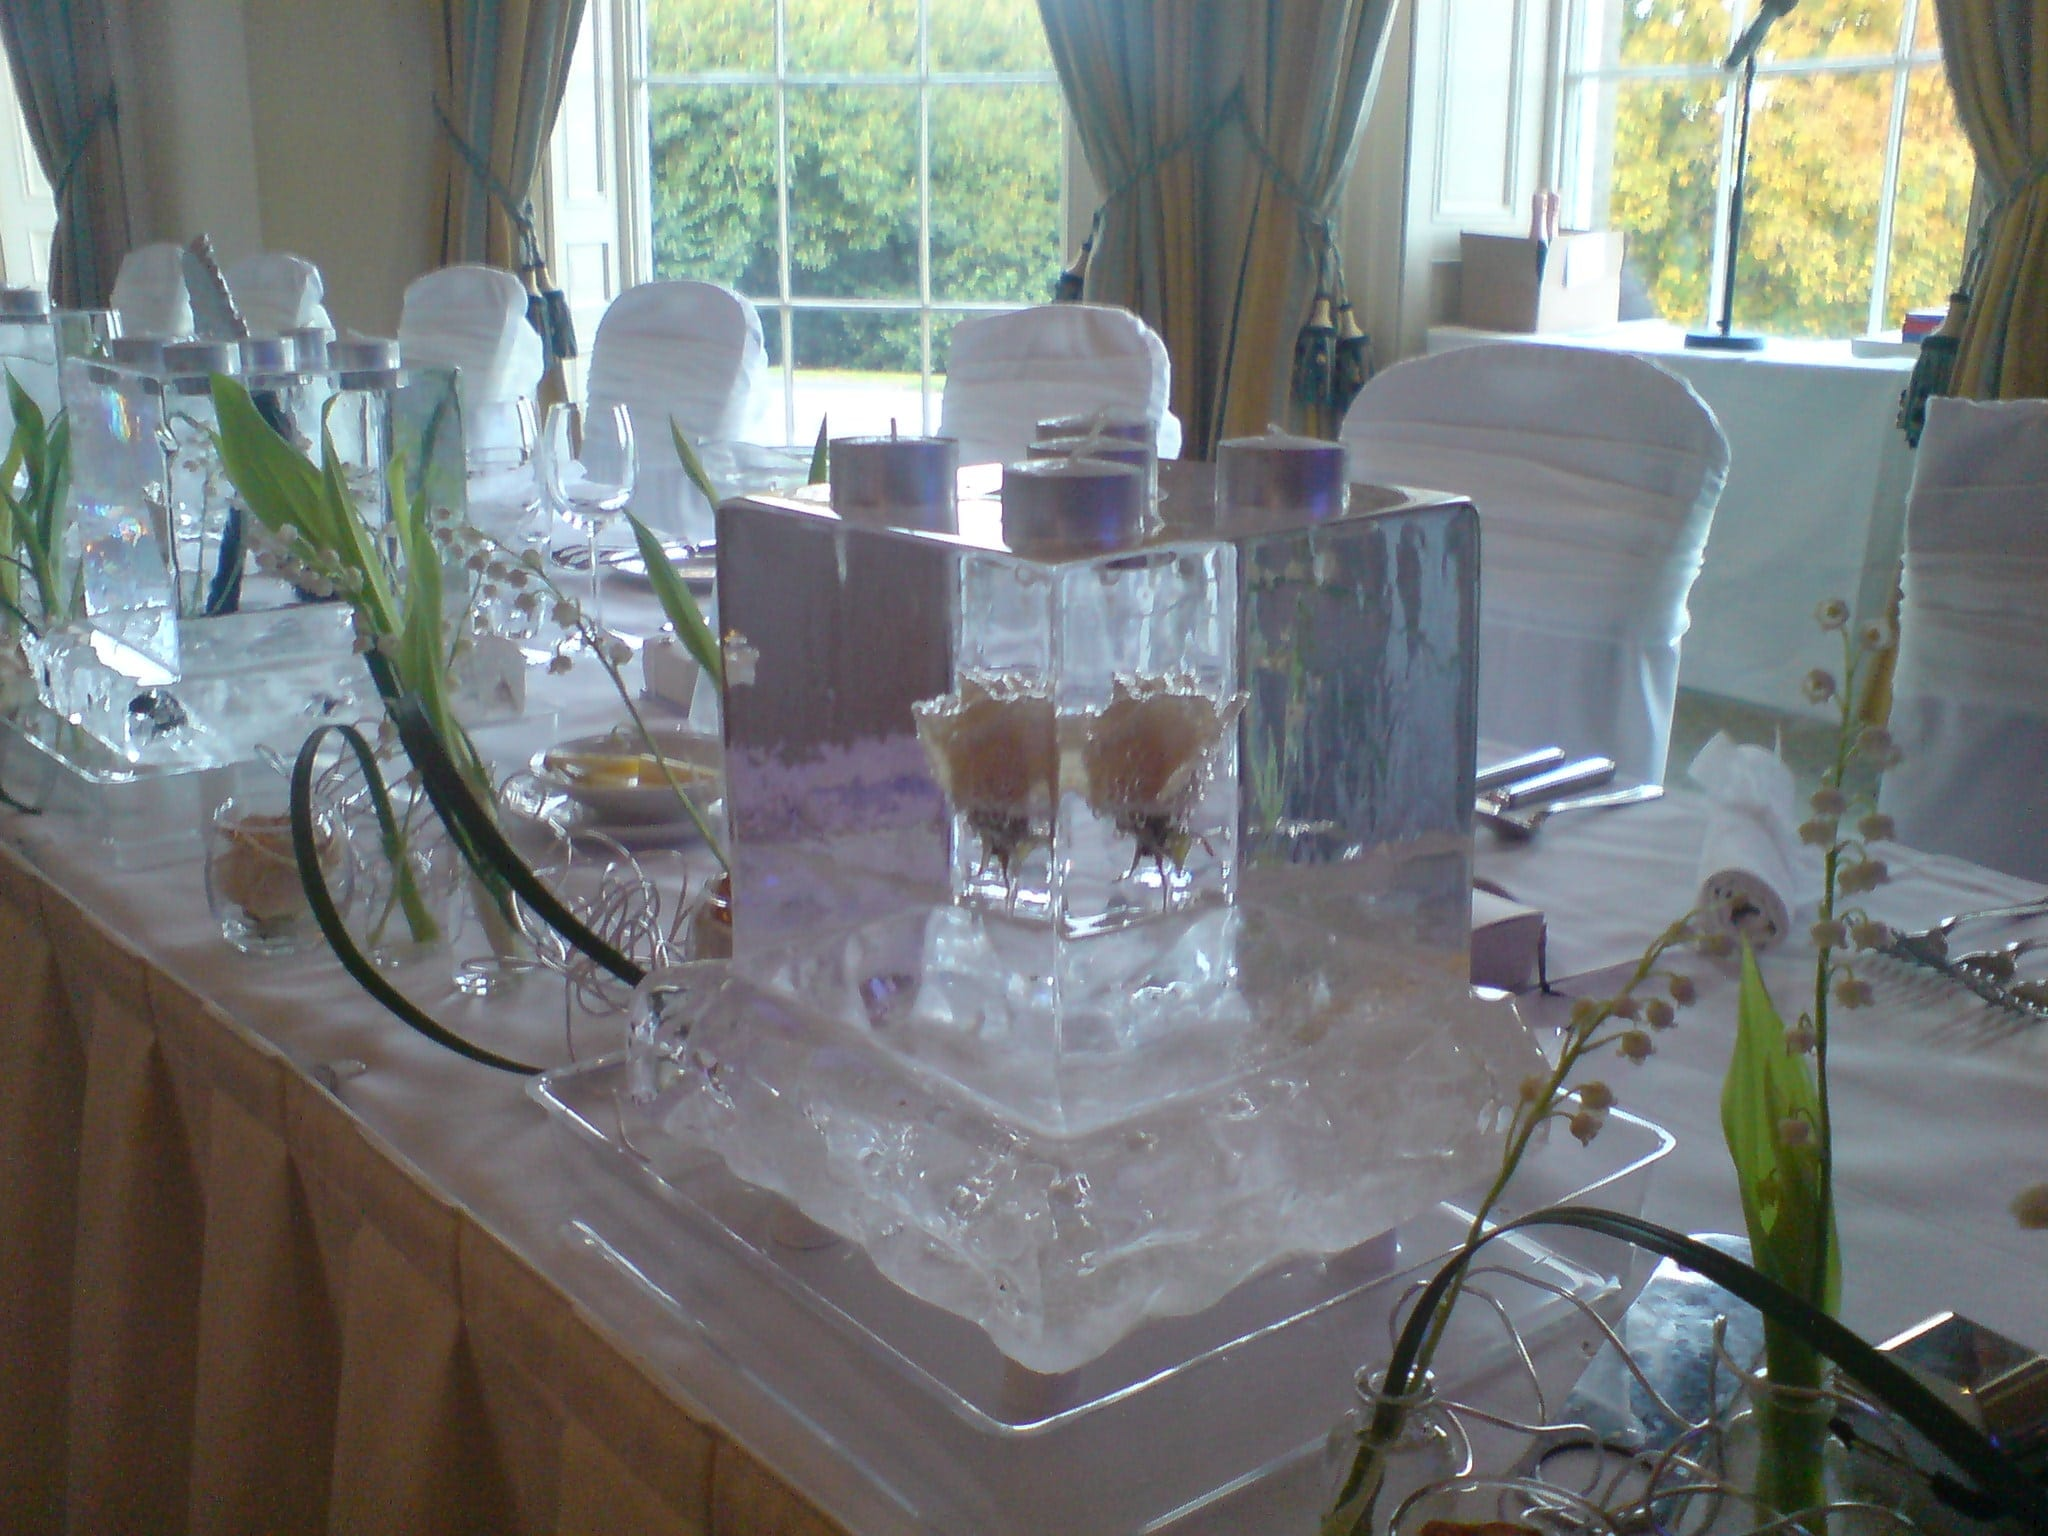 Ice Sculpture Wedding Decorations A Unique Idea